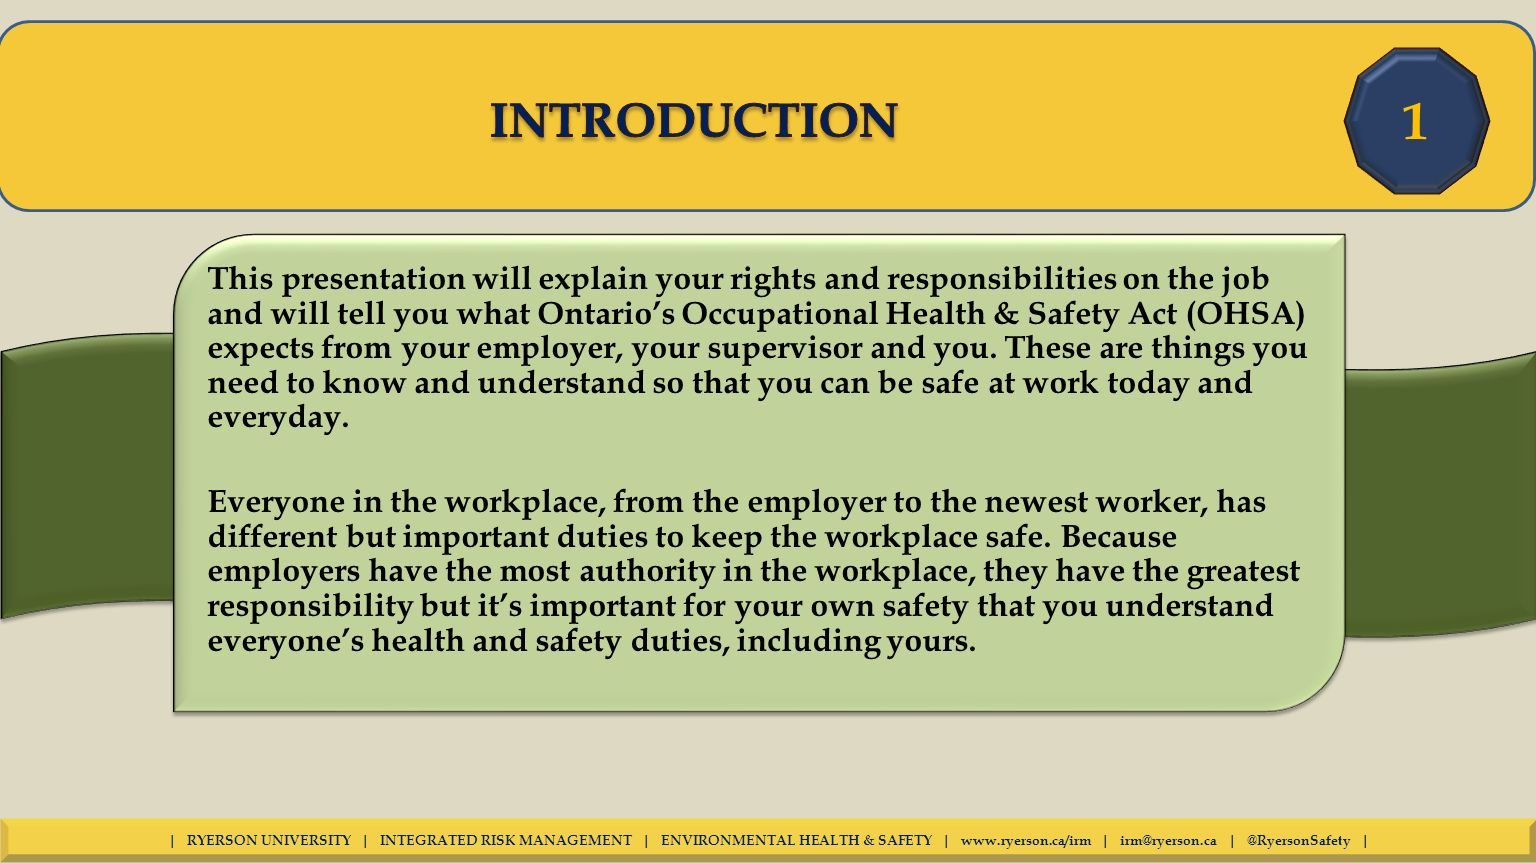 Summary of the Occupational Safety and Health Act